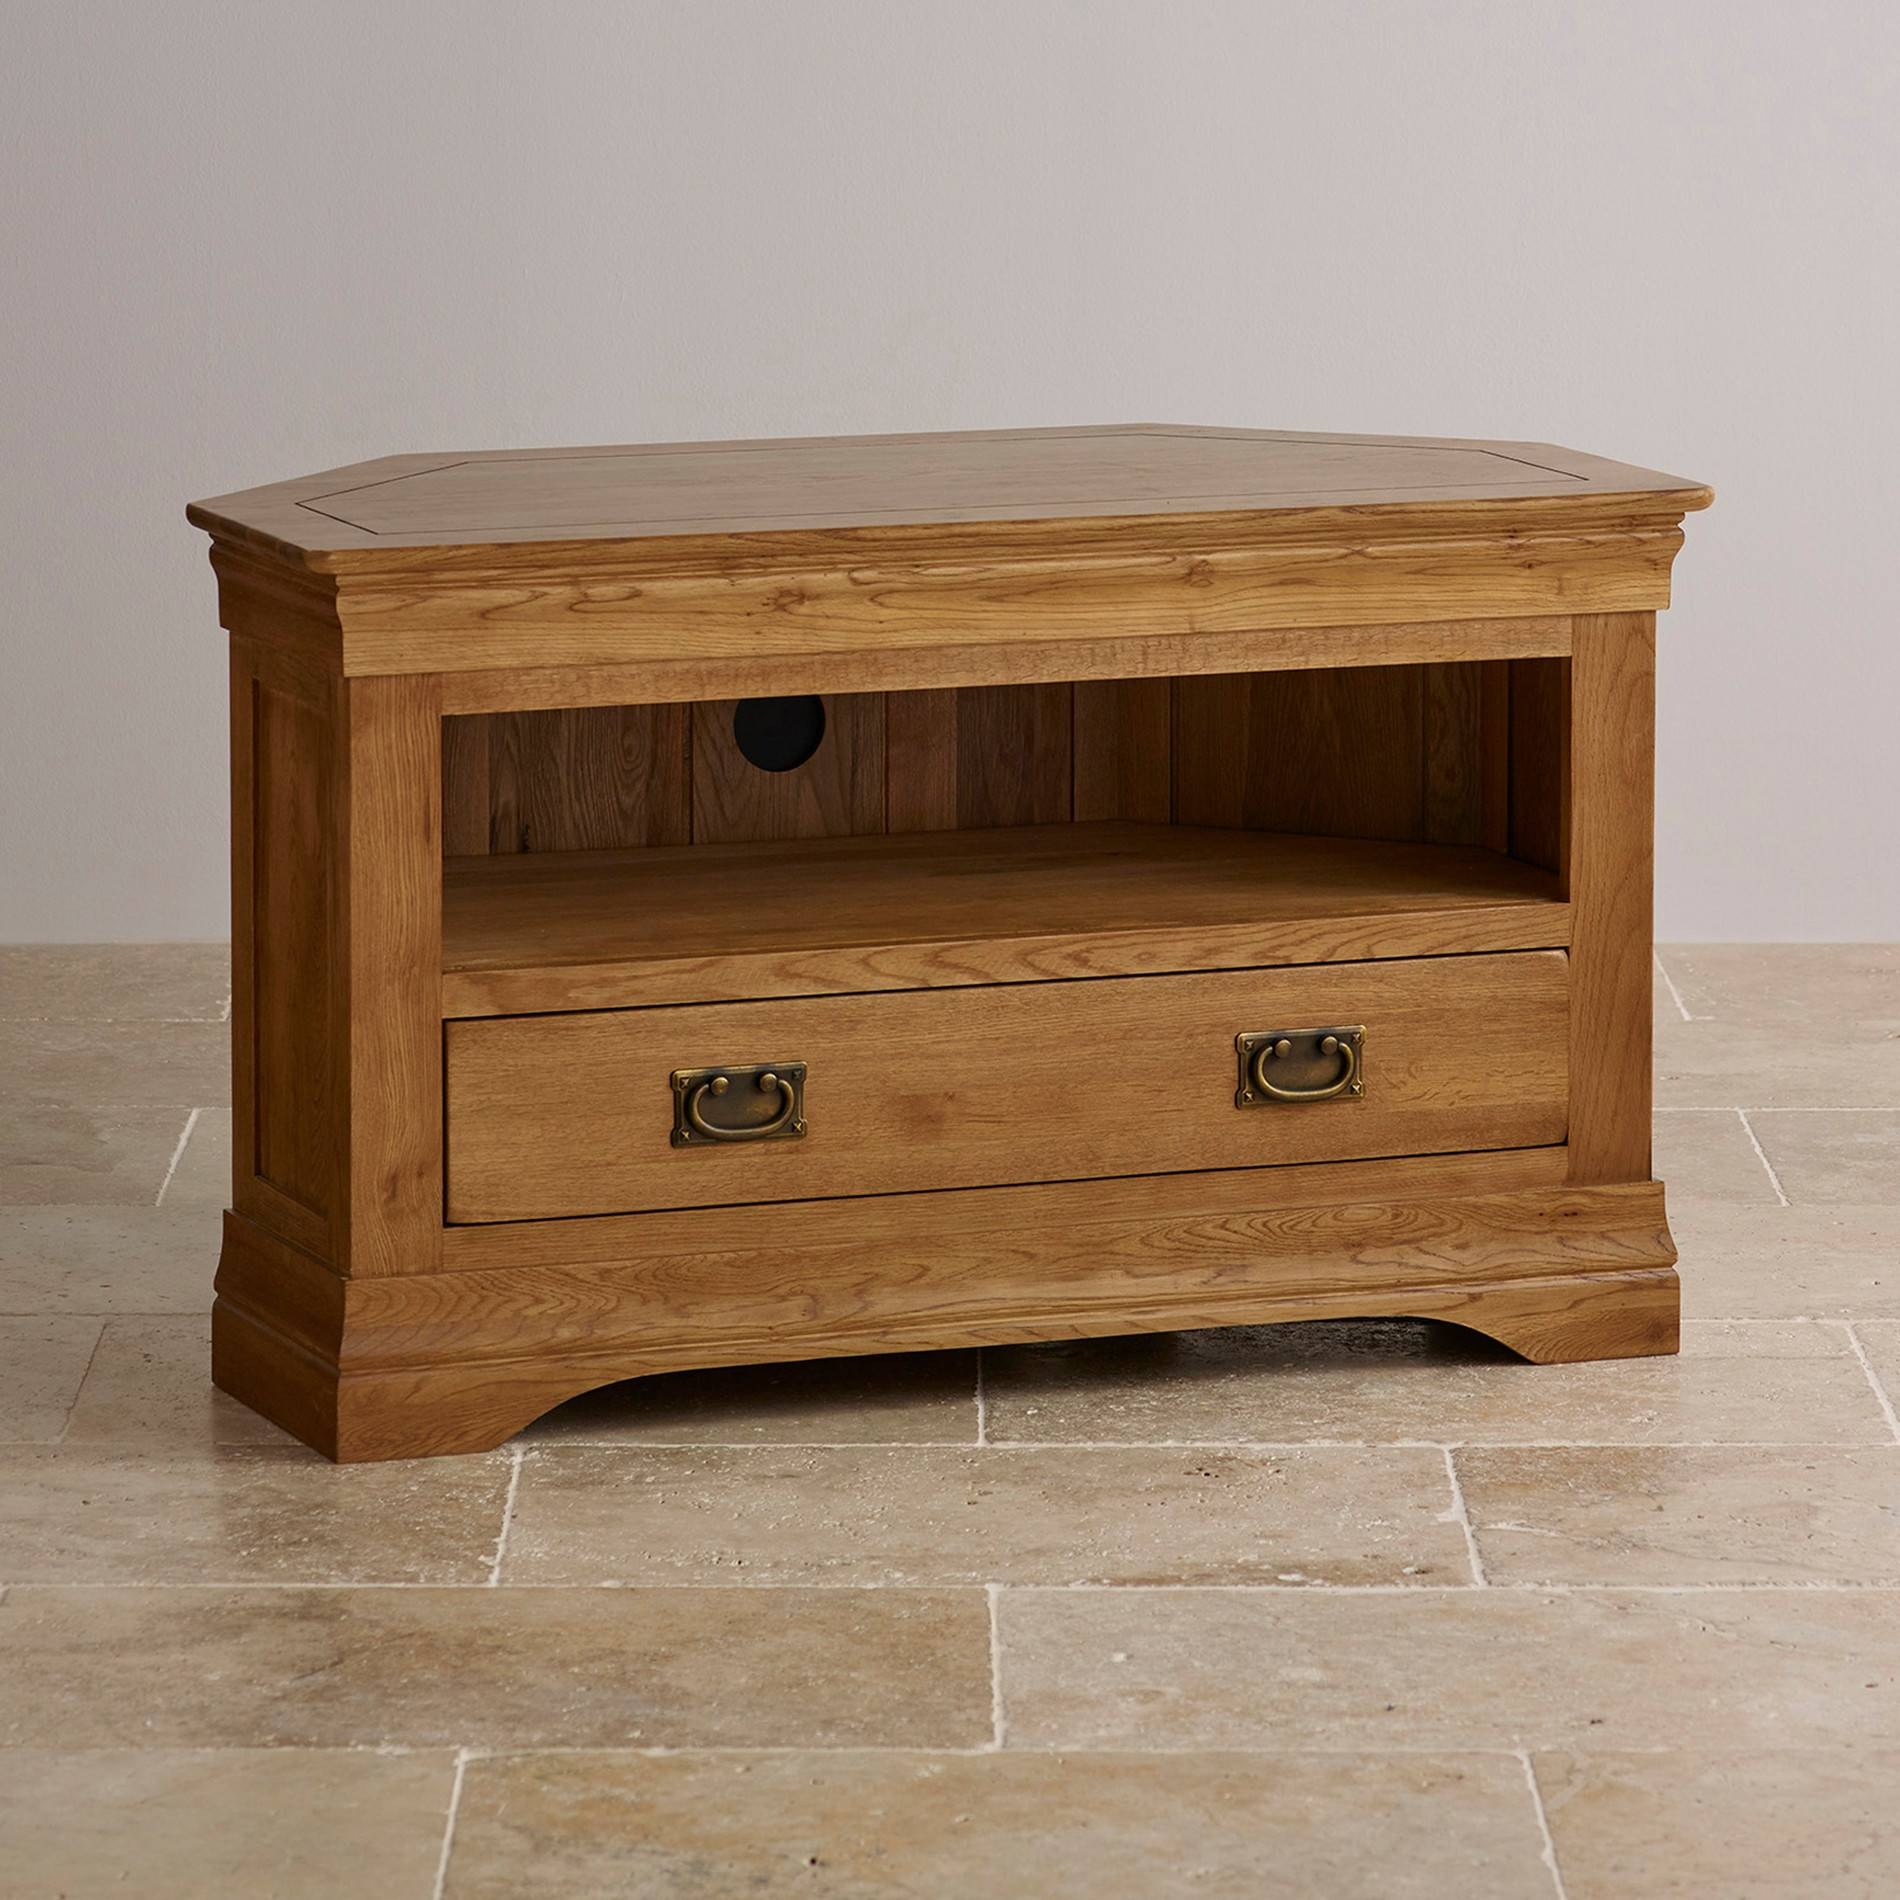 French Farmhouse Corner Tv Unit | Solid Oak | Oak Furniture Land Inside Tv Cabinets Corner Units (View 4 of 15)